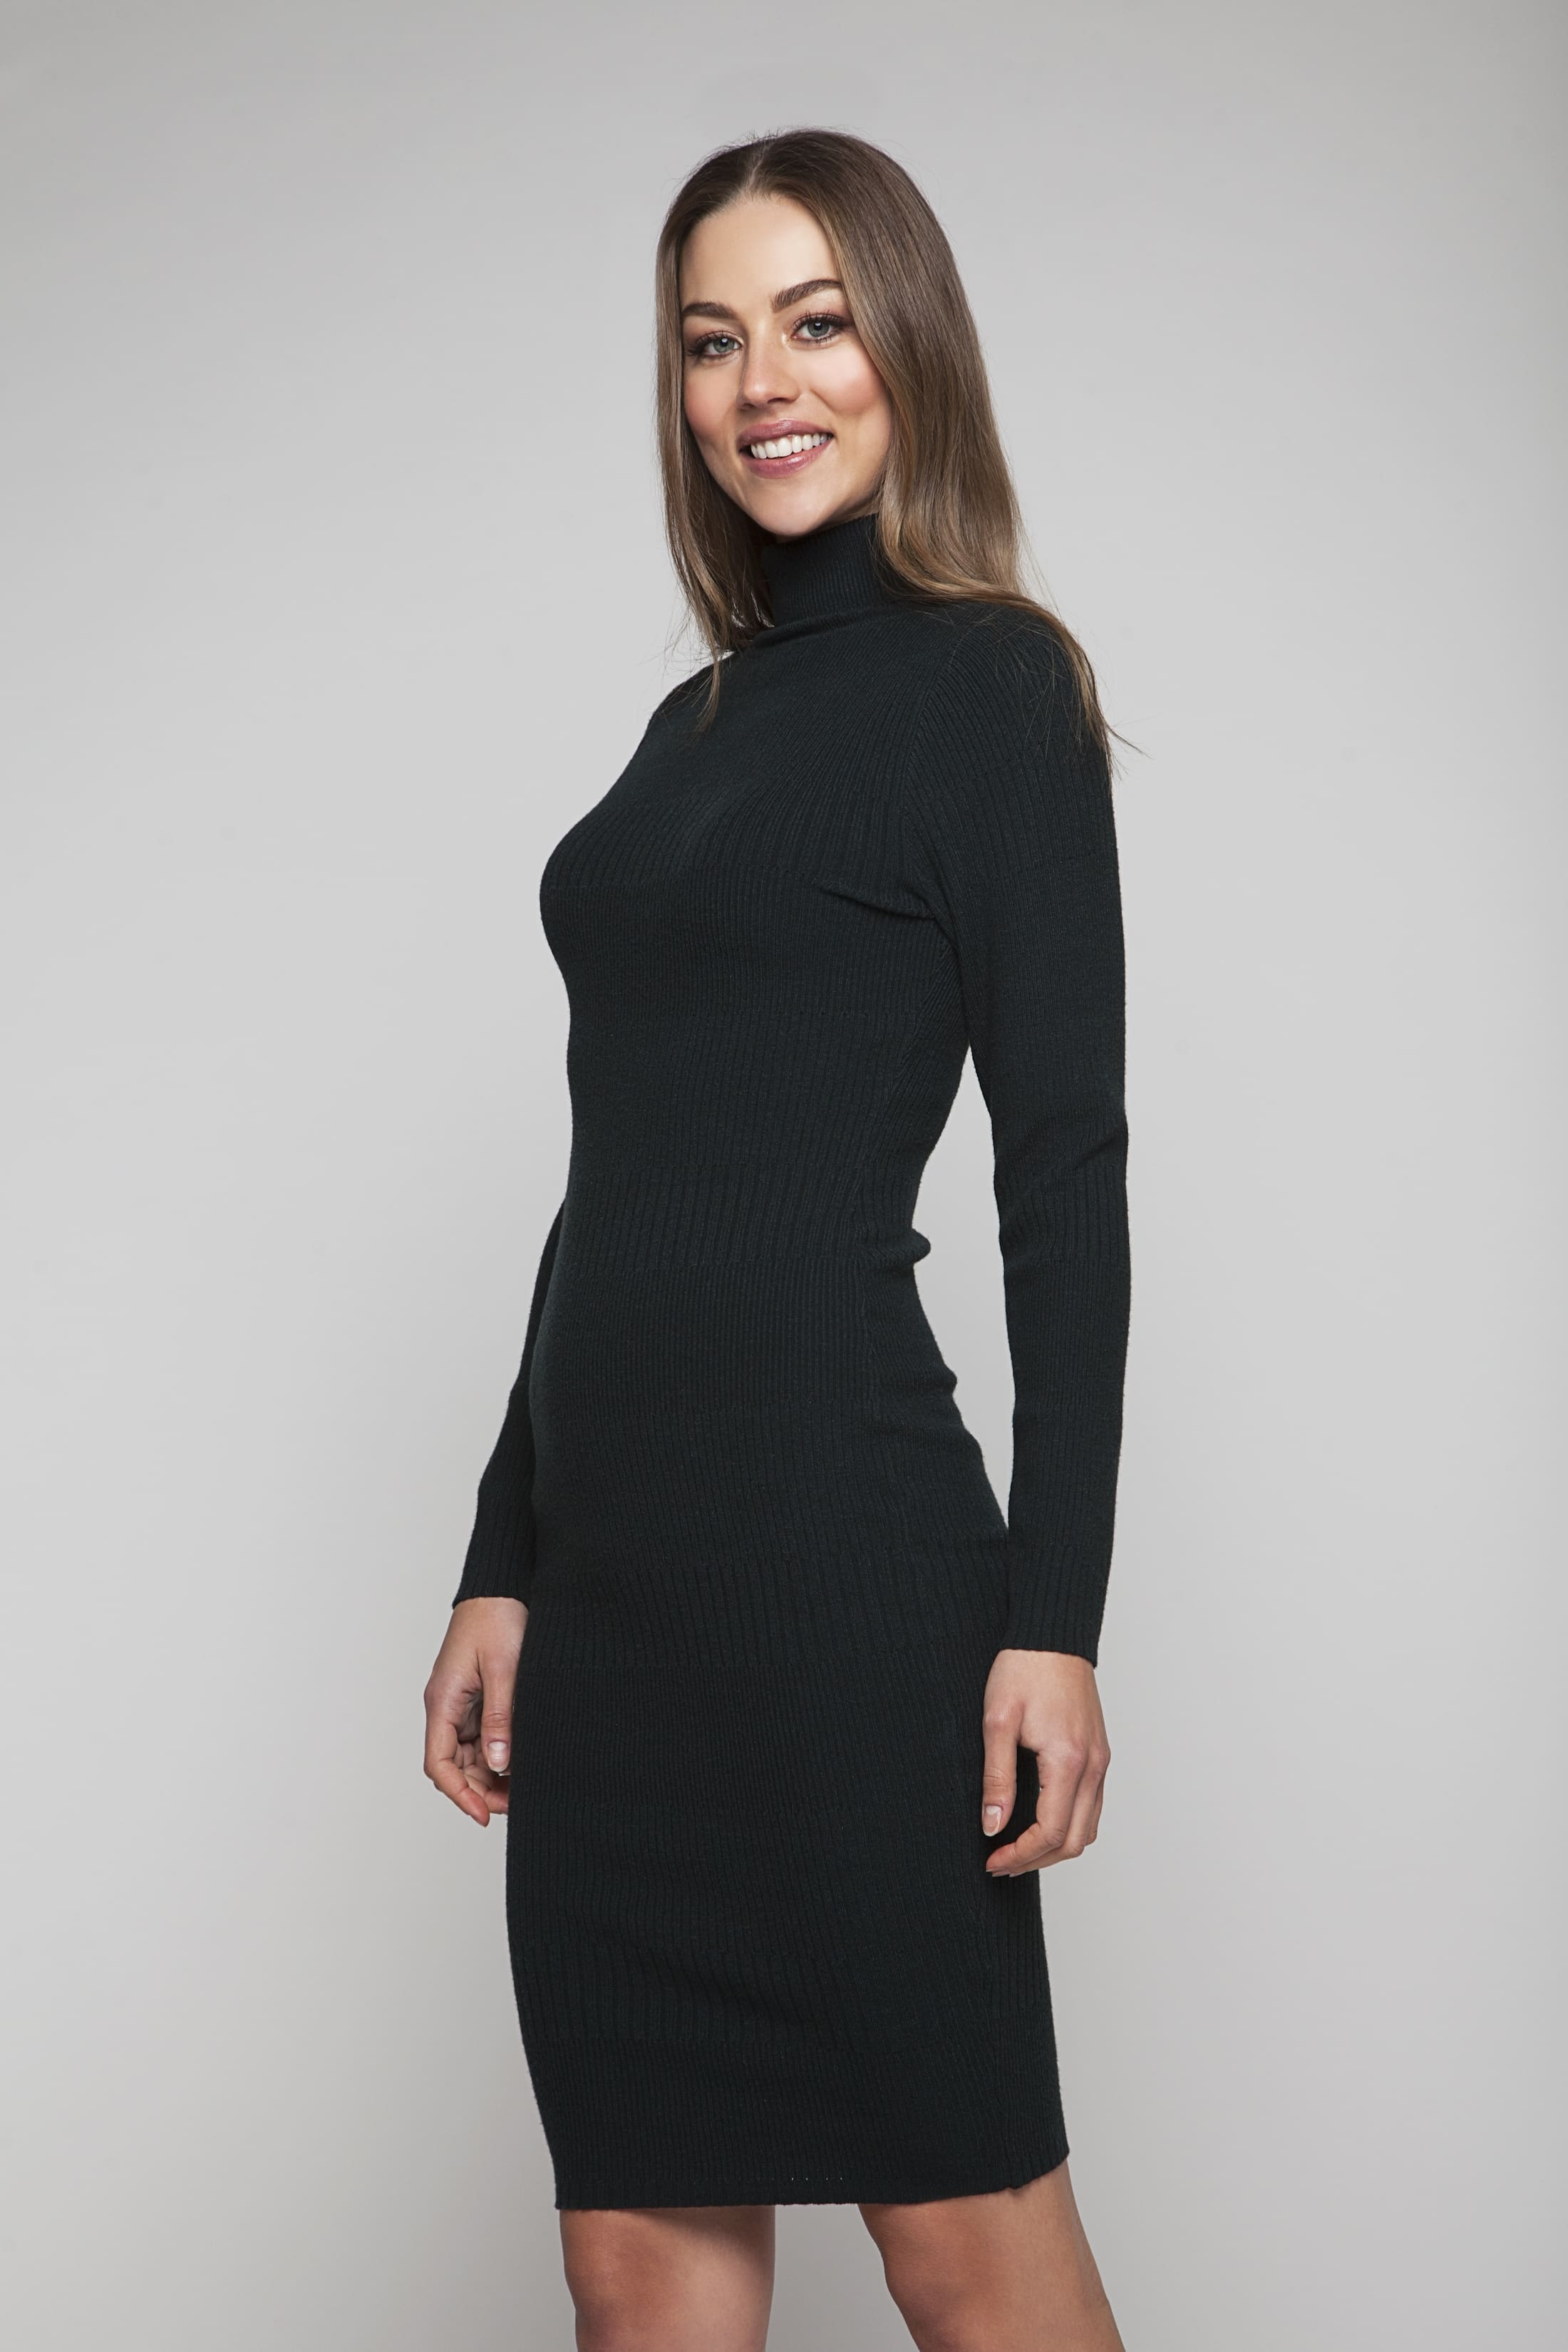 Soft green knitted dress with silver-colour buttons